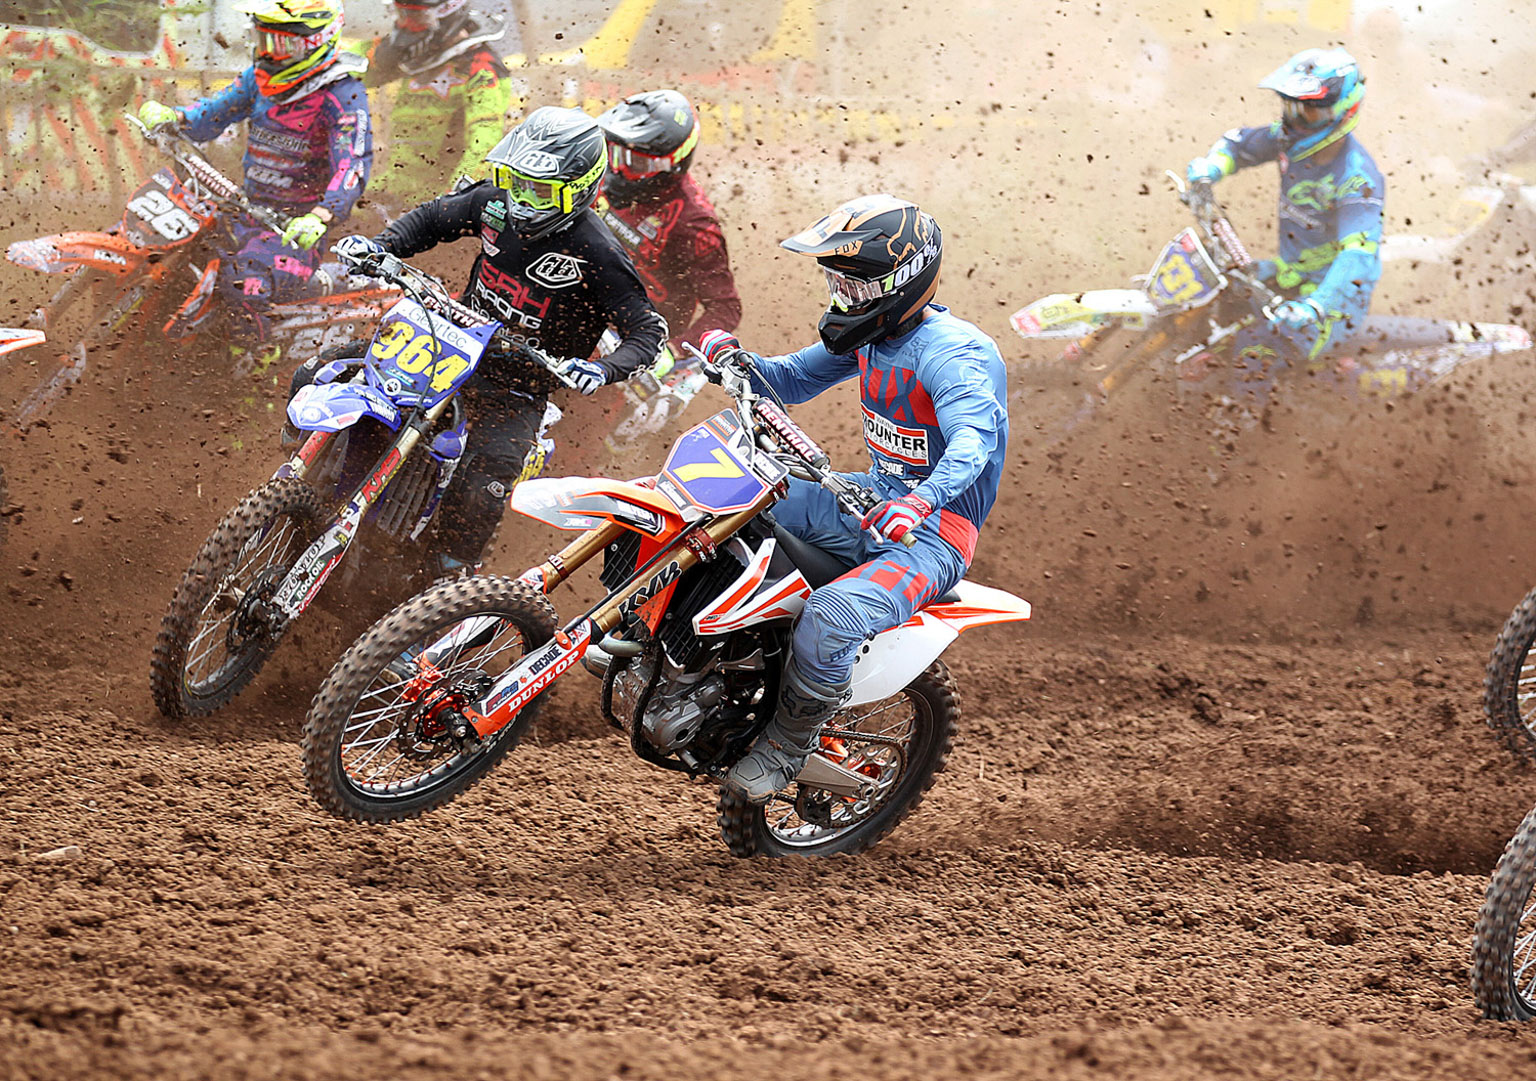 Cory McShane(7) in early MX2 action